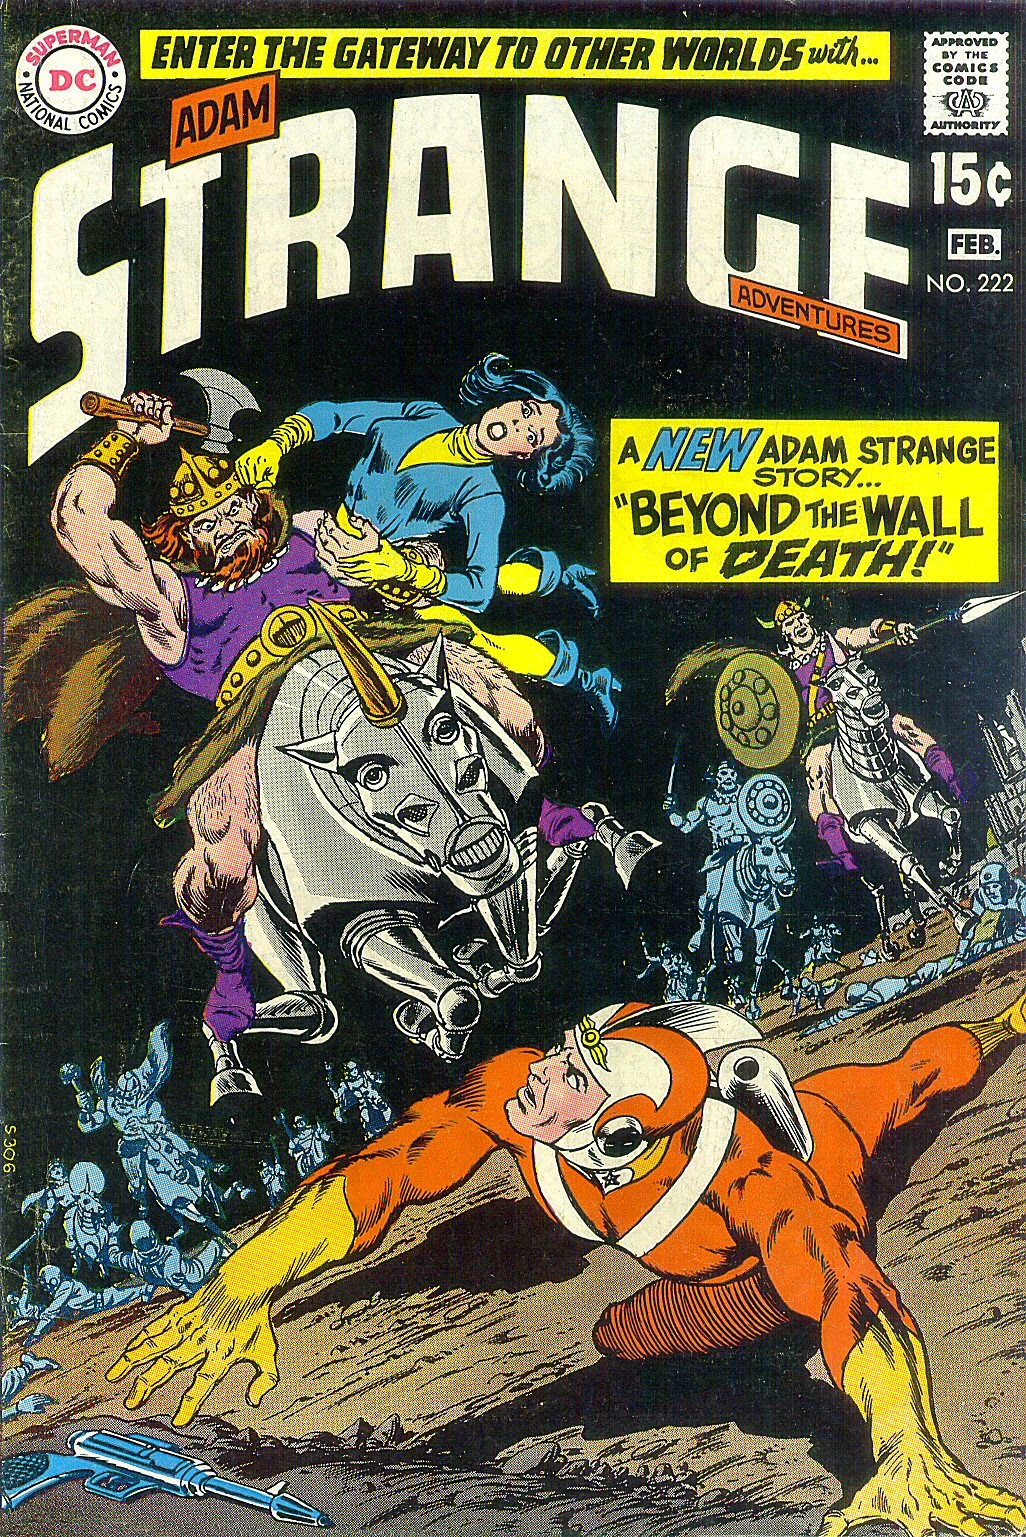 The Bronze Age Of Blogs Adam Strange Adventures Hi Hansithe Codes Do Point To An Electrical Problem With Transfer Is A Bit More Two Fisted And Gung Ho Than He Used Be But Then Whats Getting Kane In Not Having Fight Scene Or Several